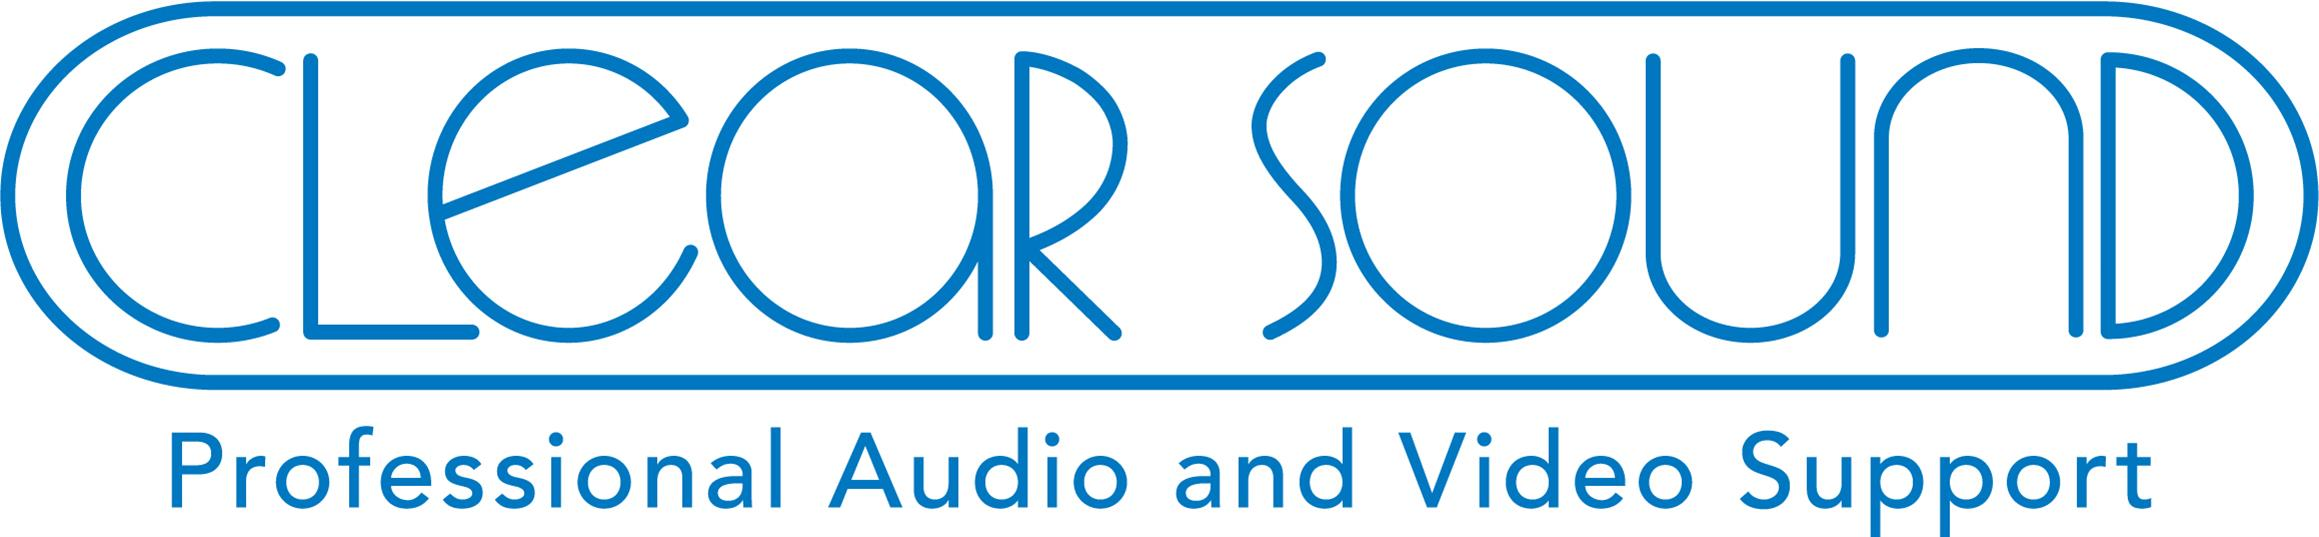 Clear Sound, Inc. logo